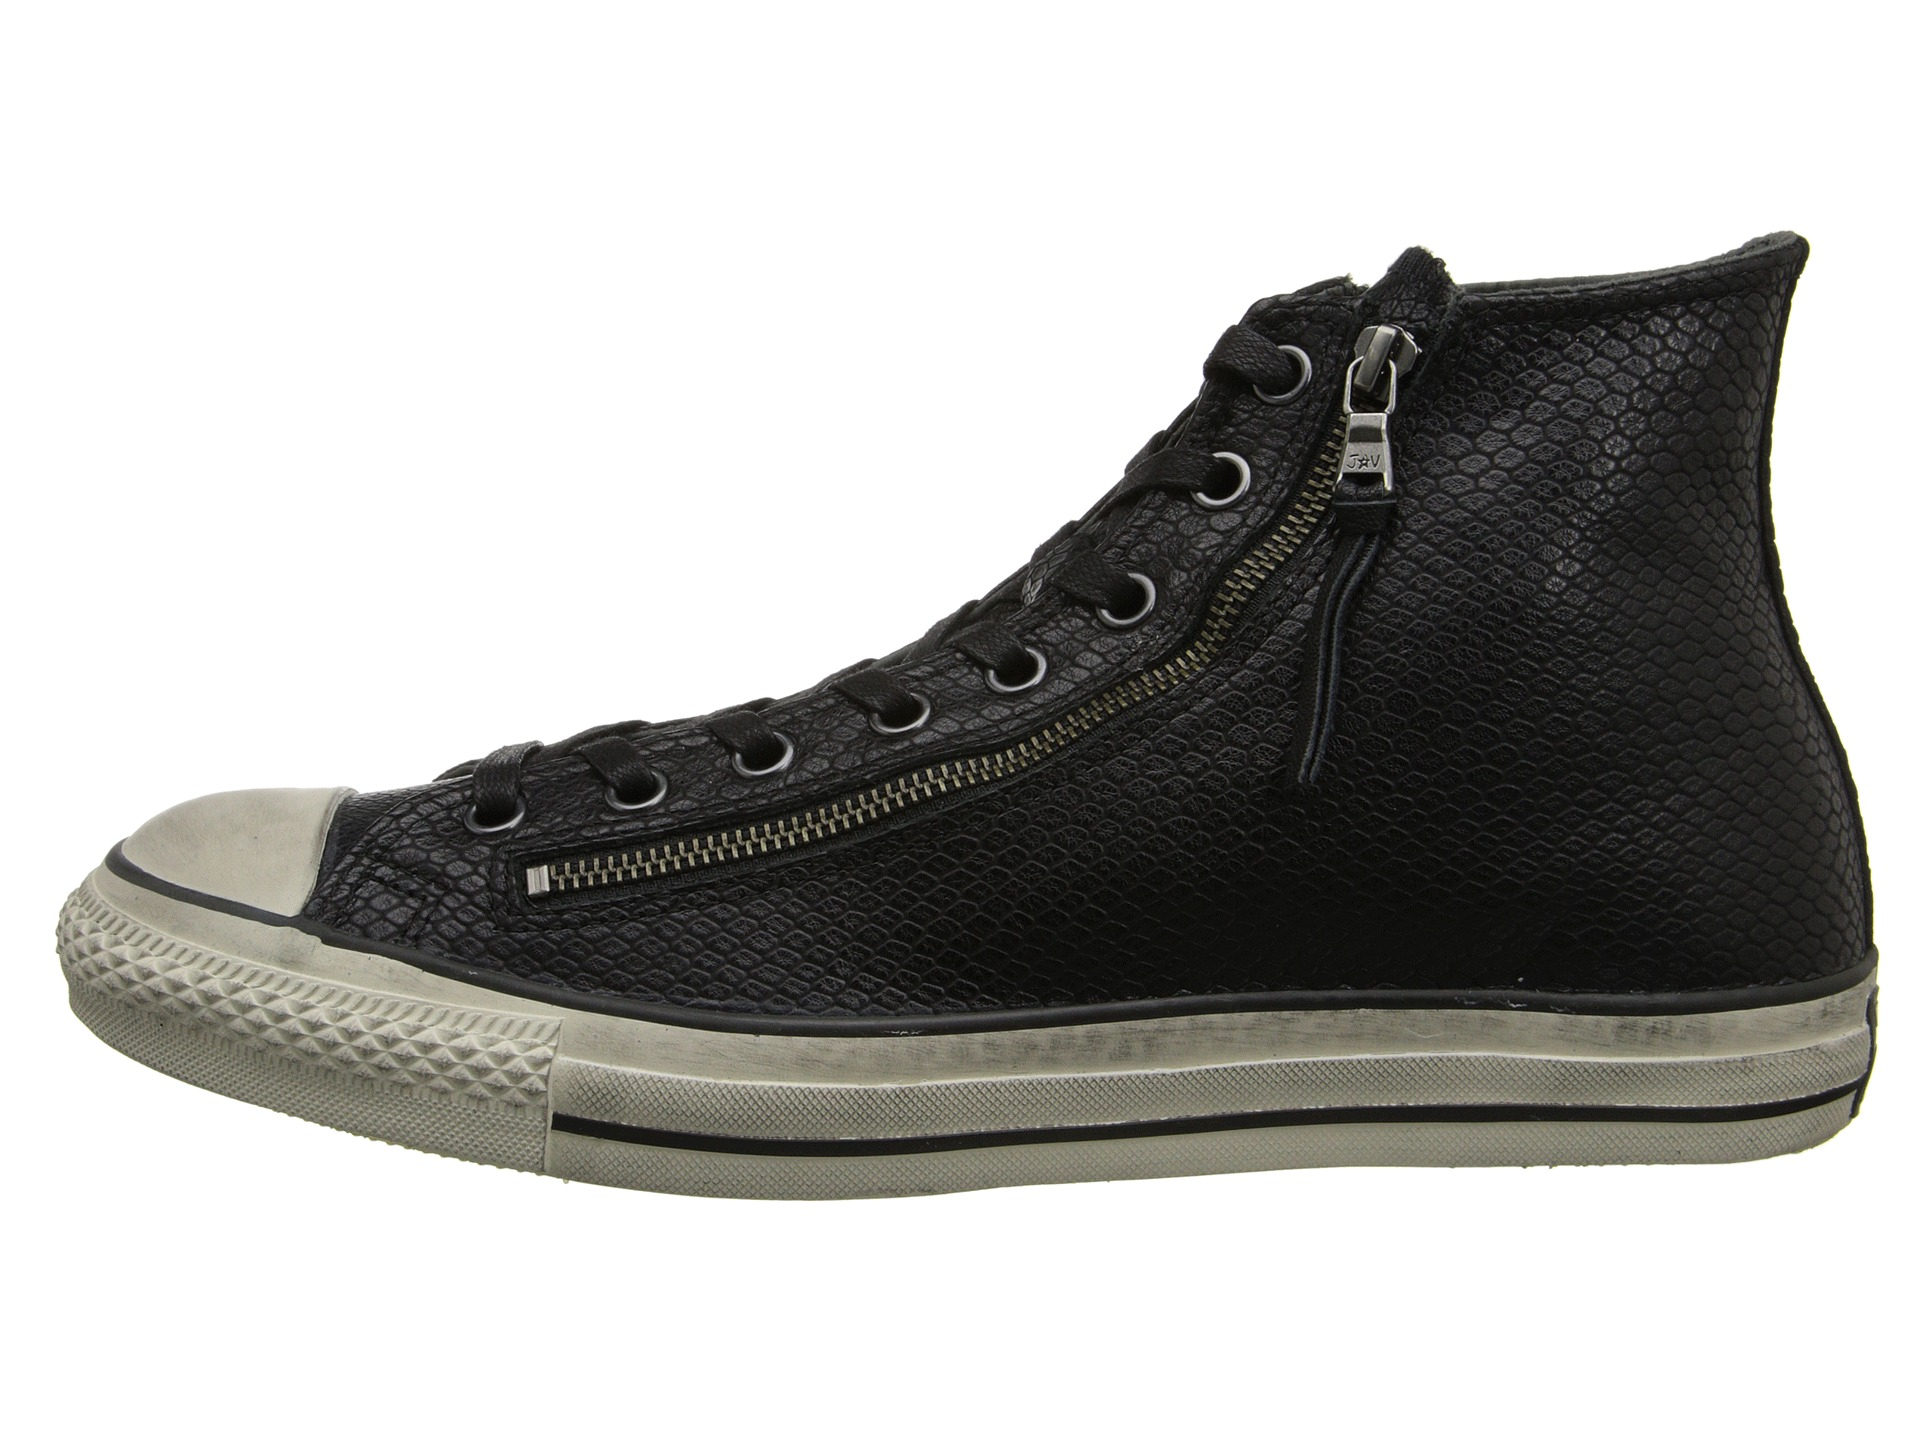 a647cd49bcc868 ... new arrivals lyst converse chuck taylor all star leather double zip  black snake e92b6 29efe